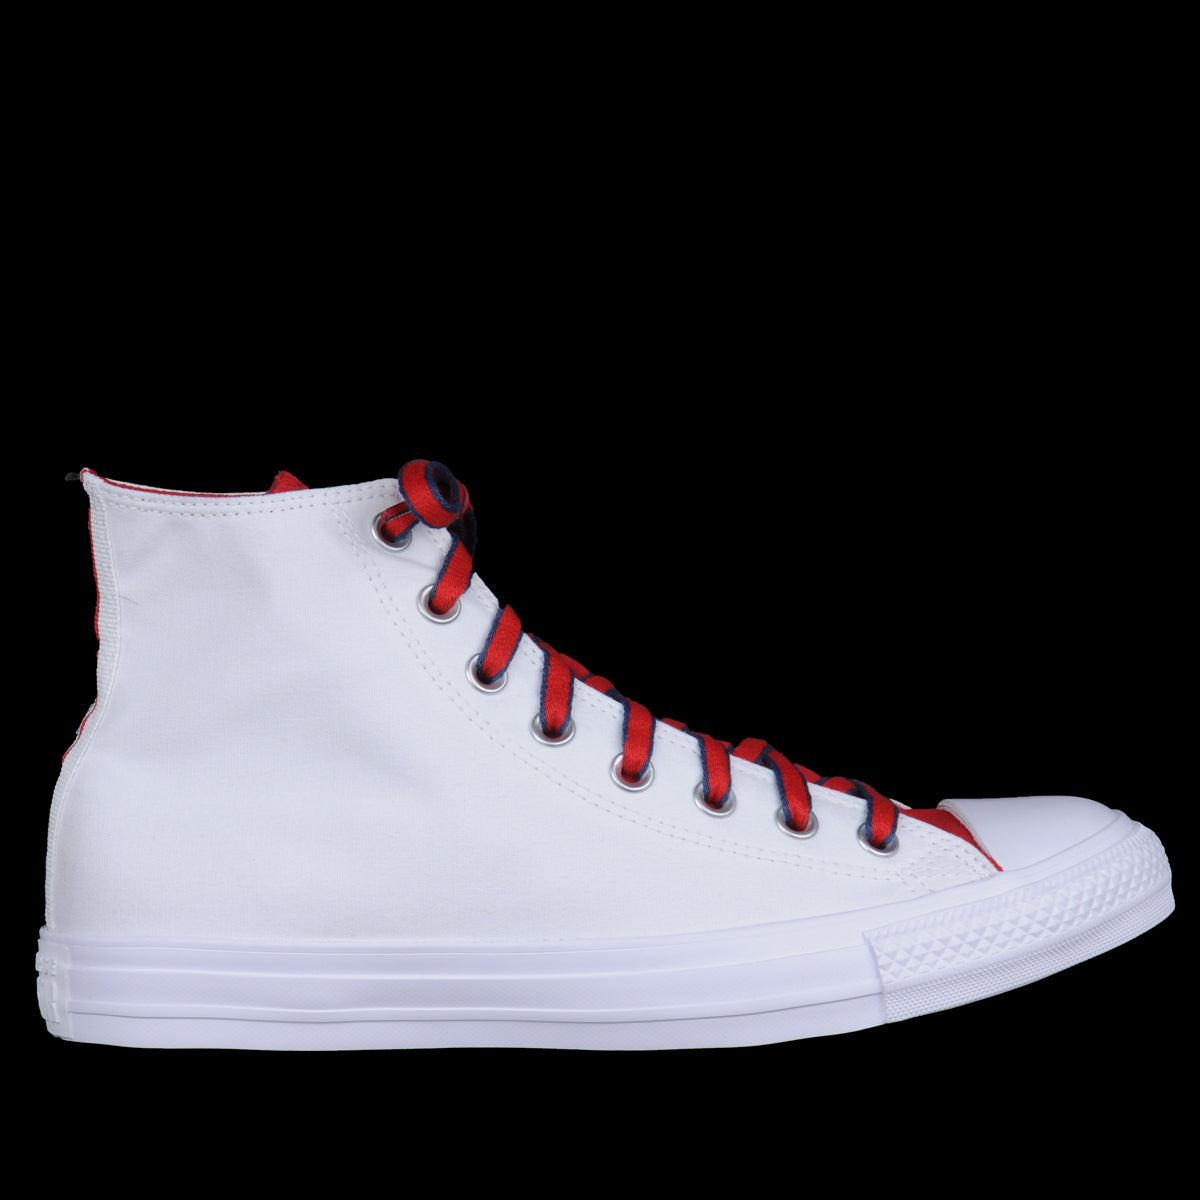 f524fda8f73c Converse - Chuck Taylor All Star Hi in White Gym Red   Navy - UNIONMADE